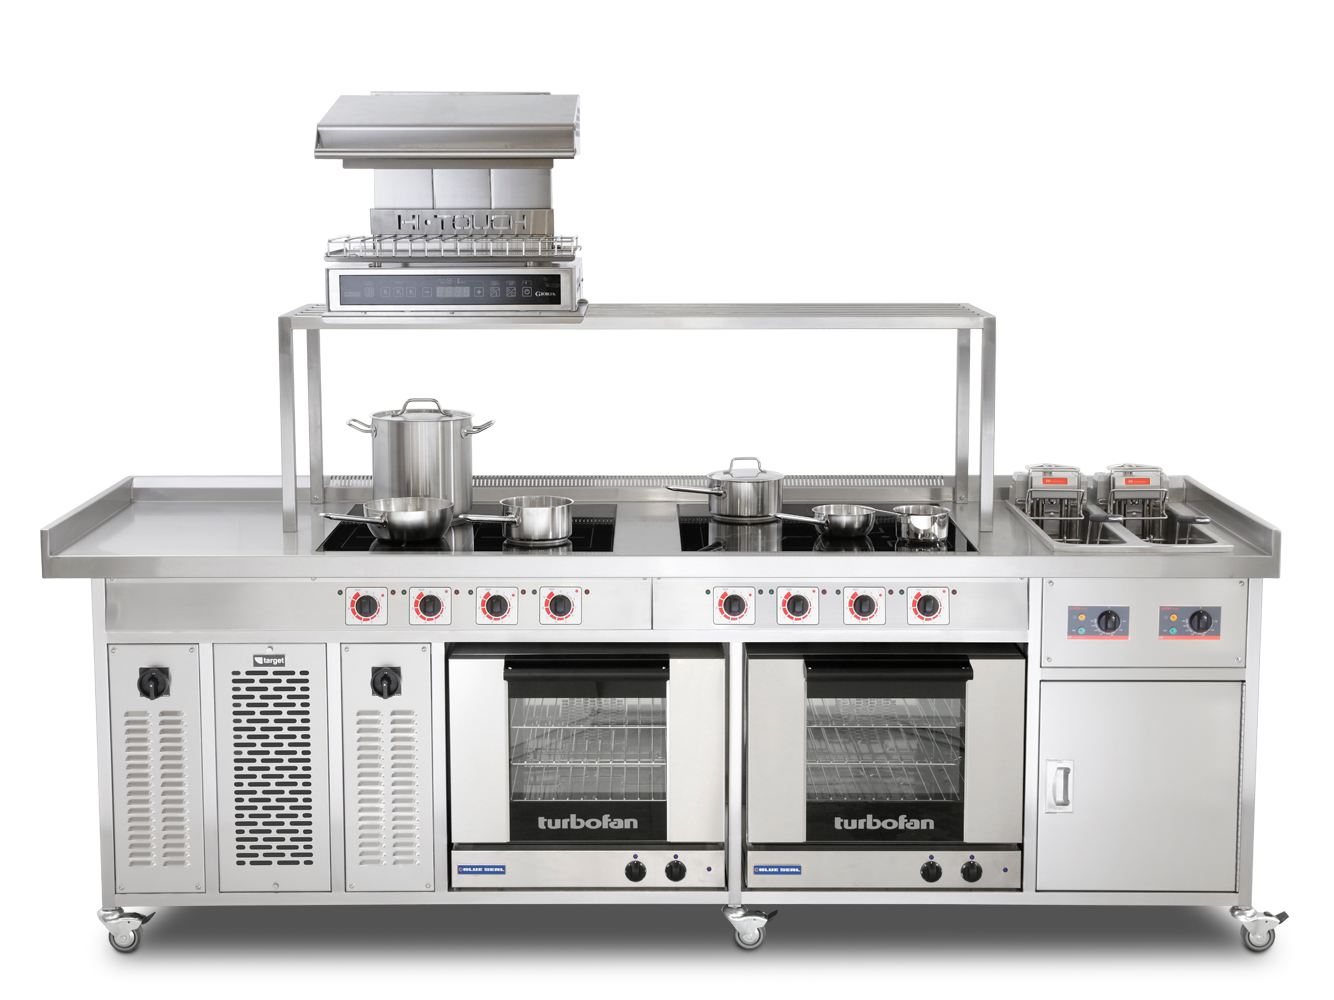 commercial-induction-range-with-hobs-fryer-oven-under-grill.png